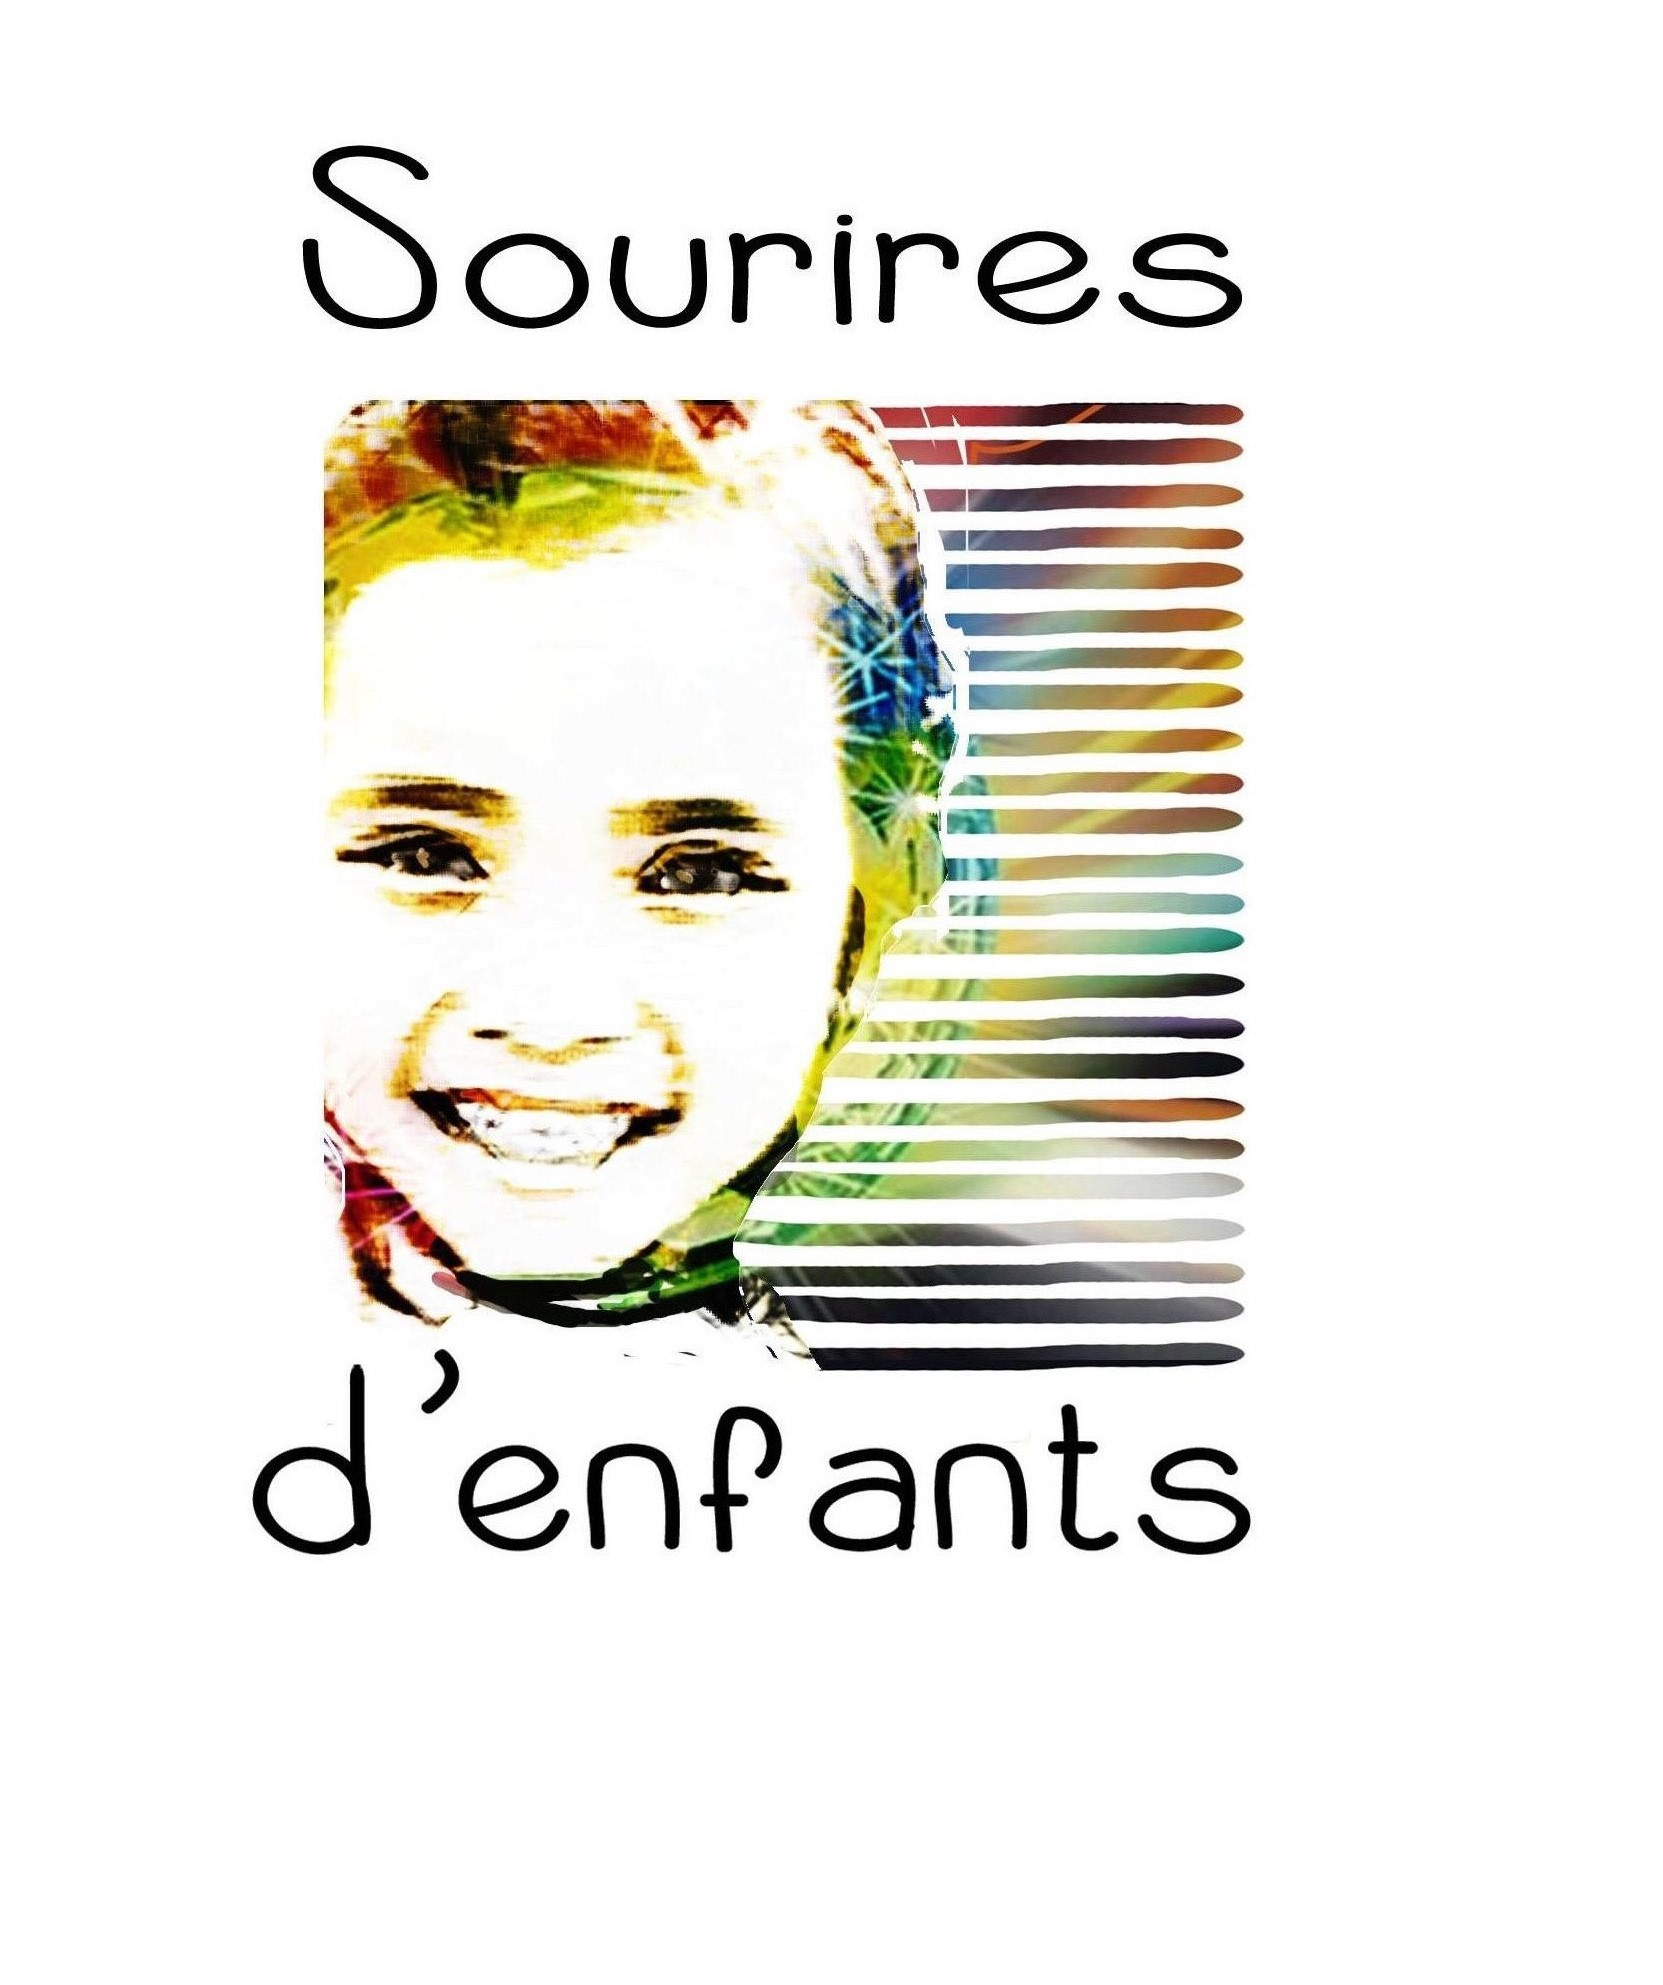 Association - Sourires d'Enfants